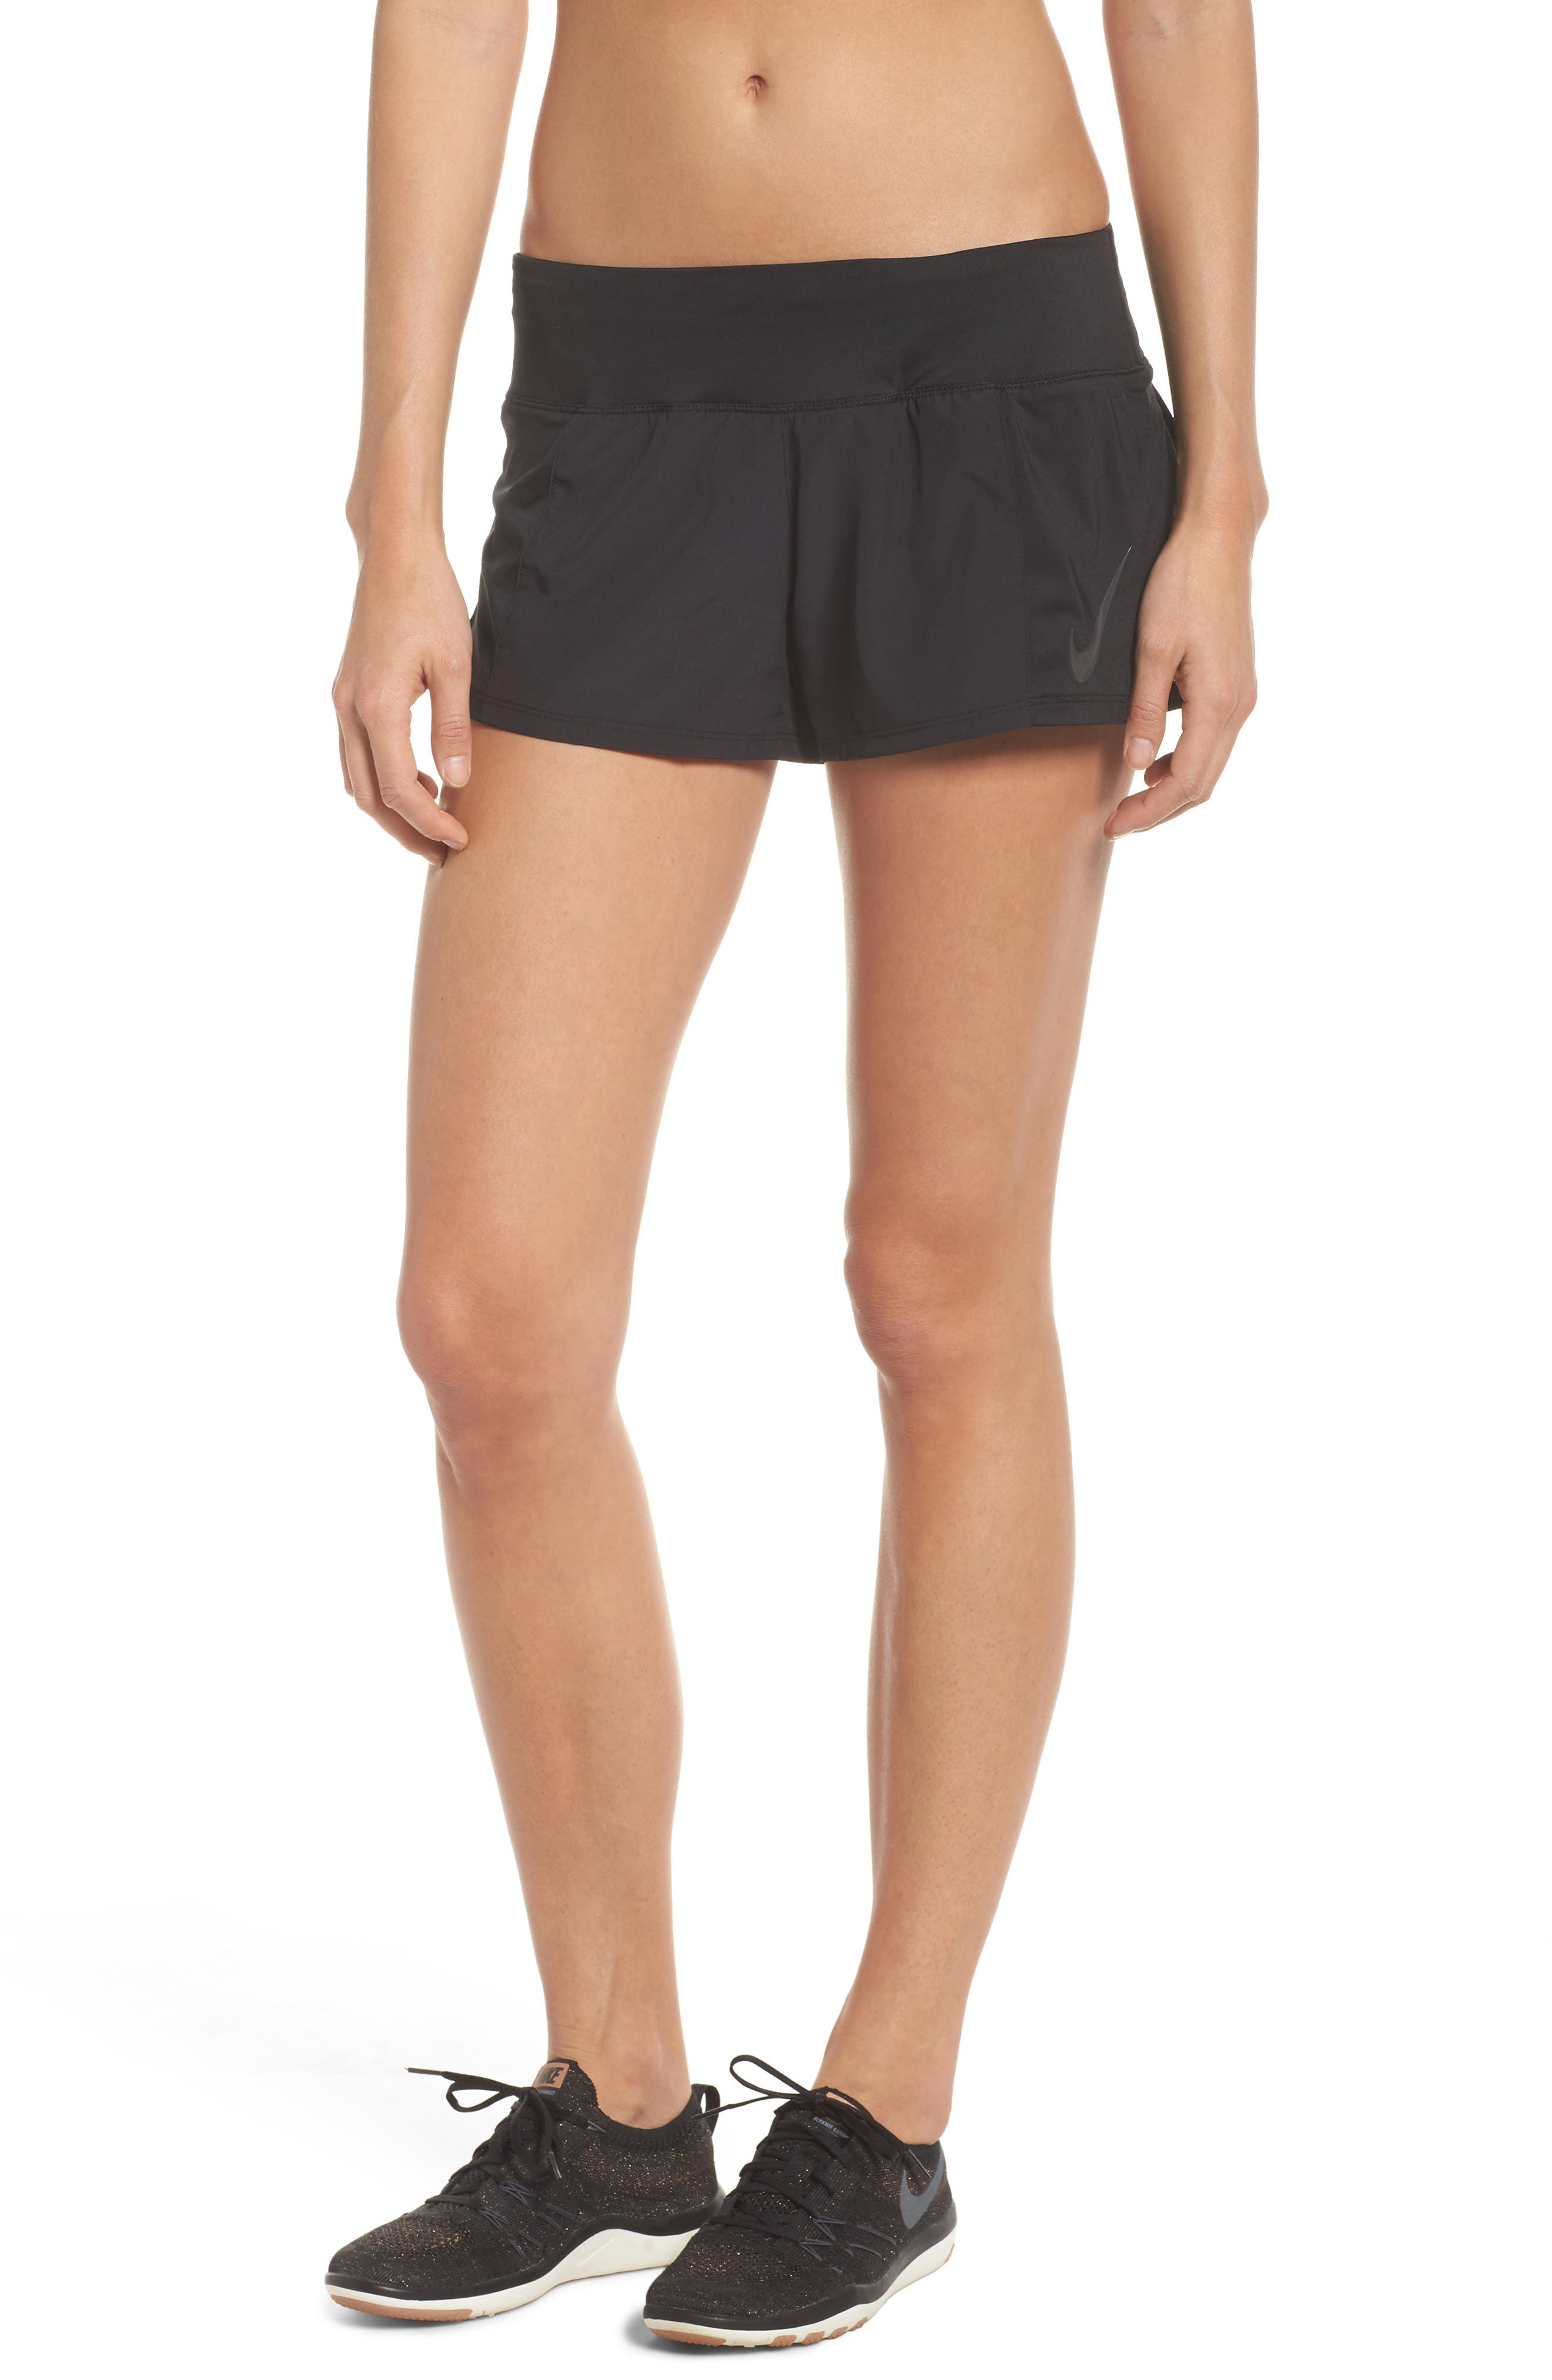 Dry Crew Running Shorts,                             Main thumbnail 1, color,                             Black/ Anthracite